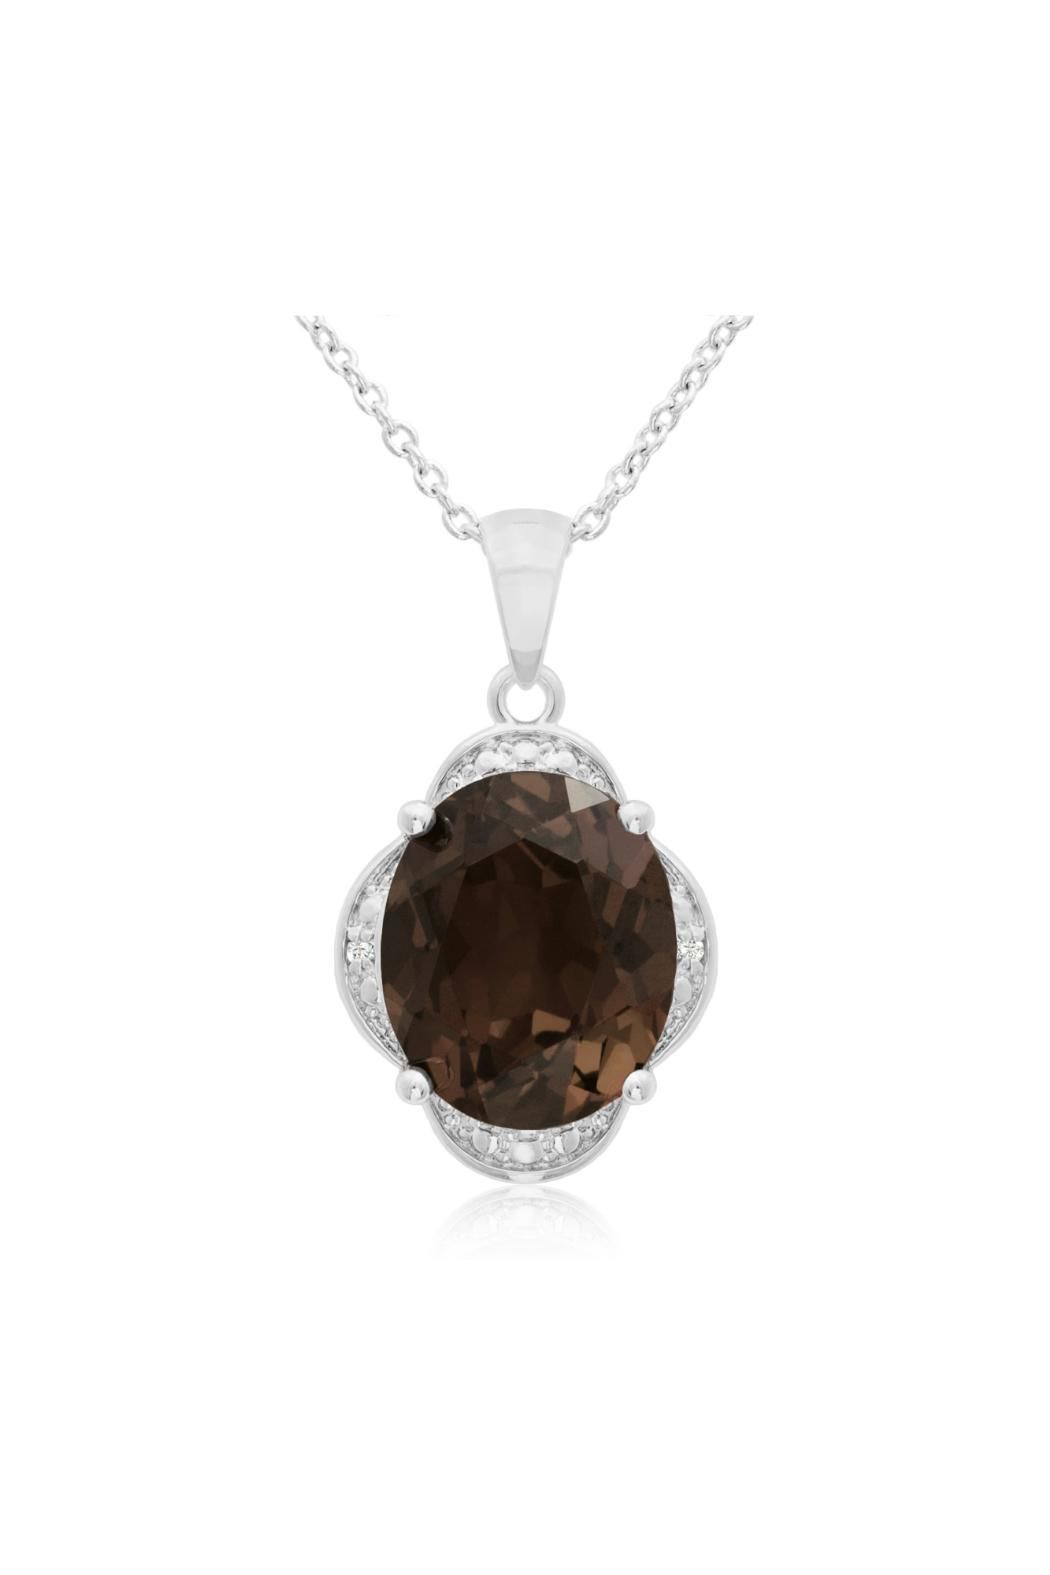 This necklace features a 12x10mm oval shape smoky quartz gemstone at 4.10 carats.  It is surrounded by sparkling diamonds in J-K color I1-I2 clarity at 0.01 carats.  Pendant is about 1/2 inch long.  This necklace comes with an 18 inch chain with spring-ring clasp and is crafted in platinum overlay.   Smokey Quartz Necklace by Passiana. New York City